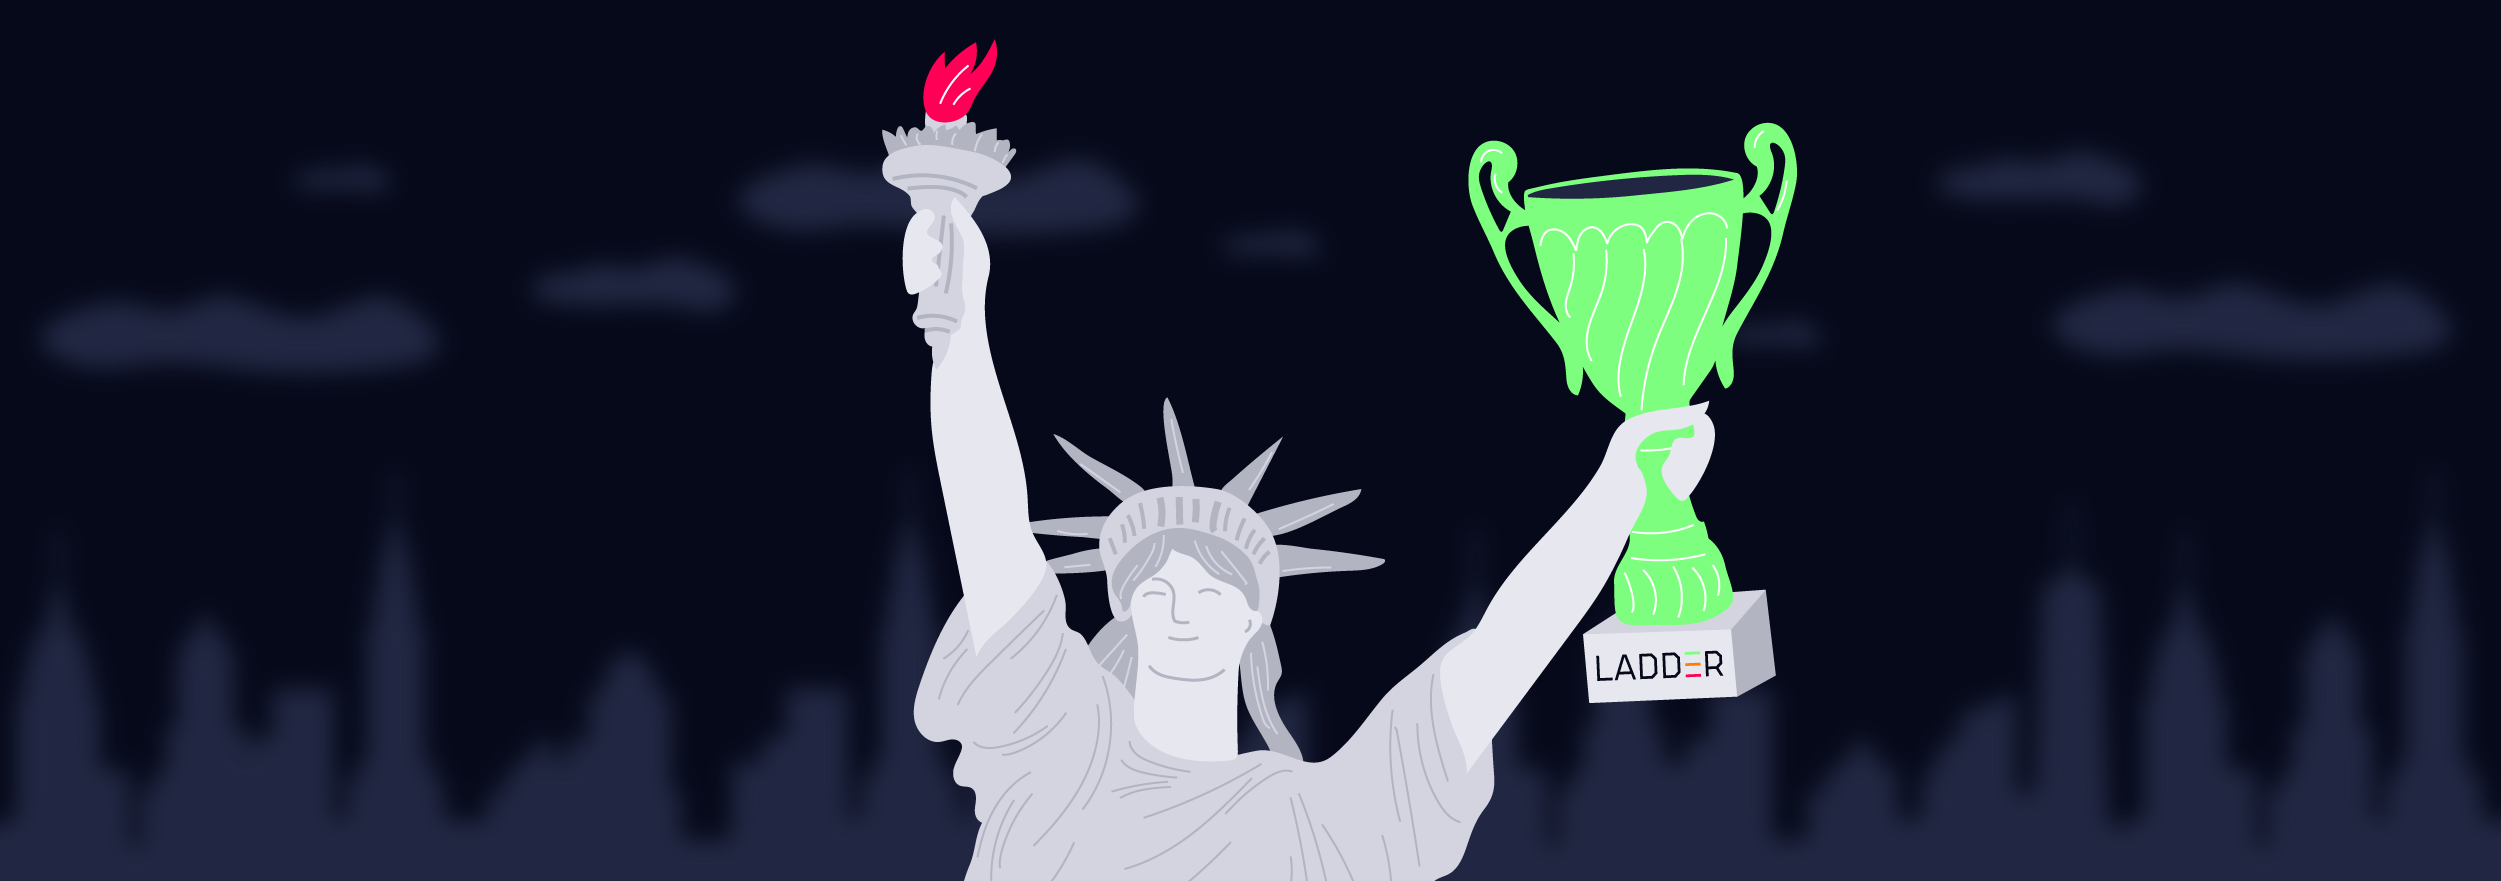 Clutch Lists Ladder Among Top Digital Strategy Agencies In New York